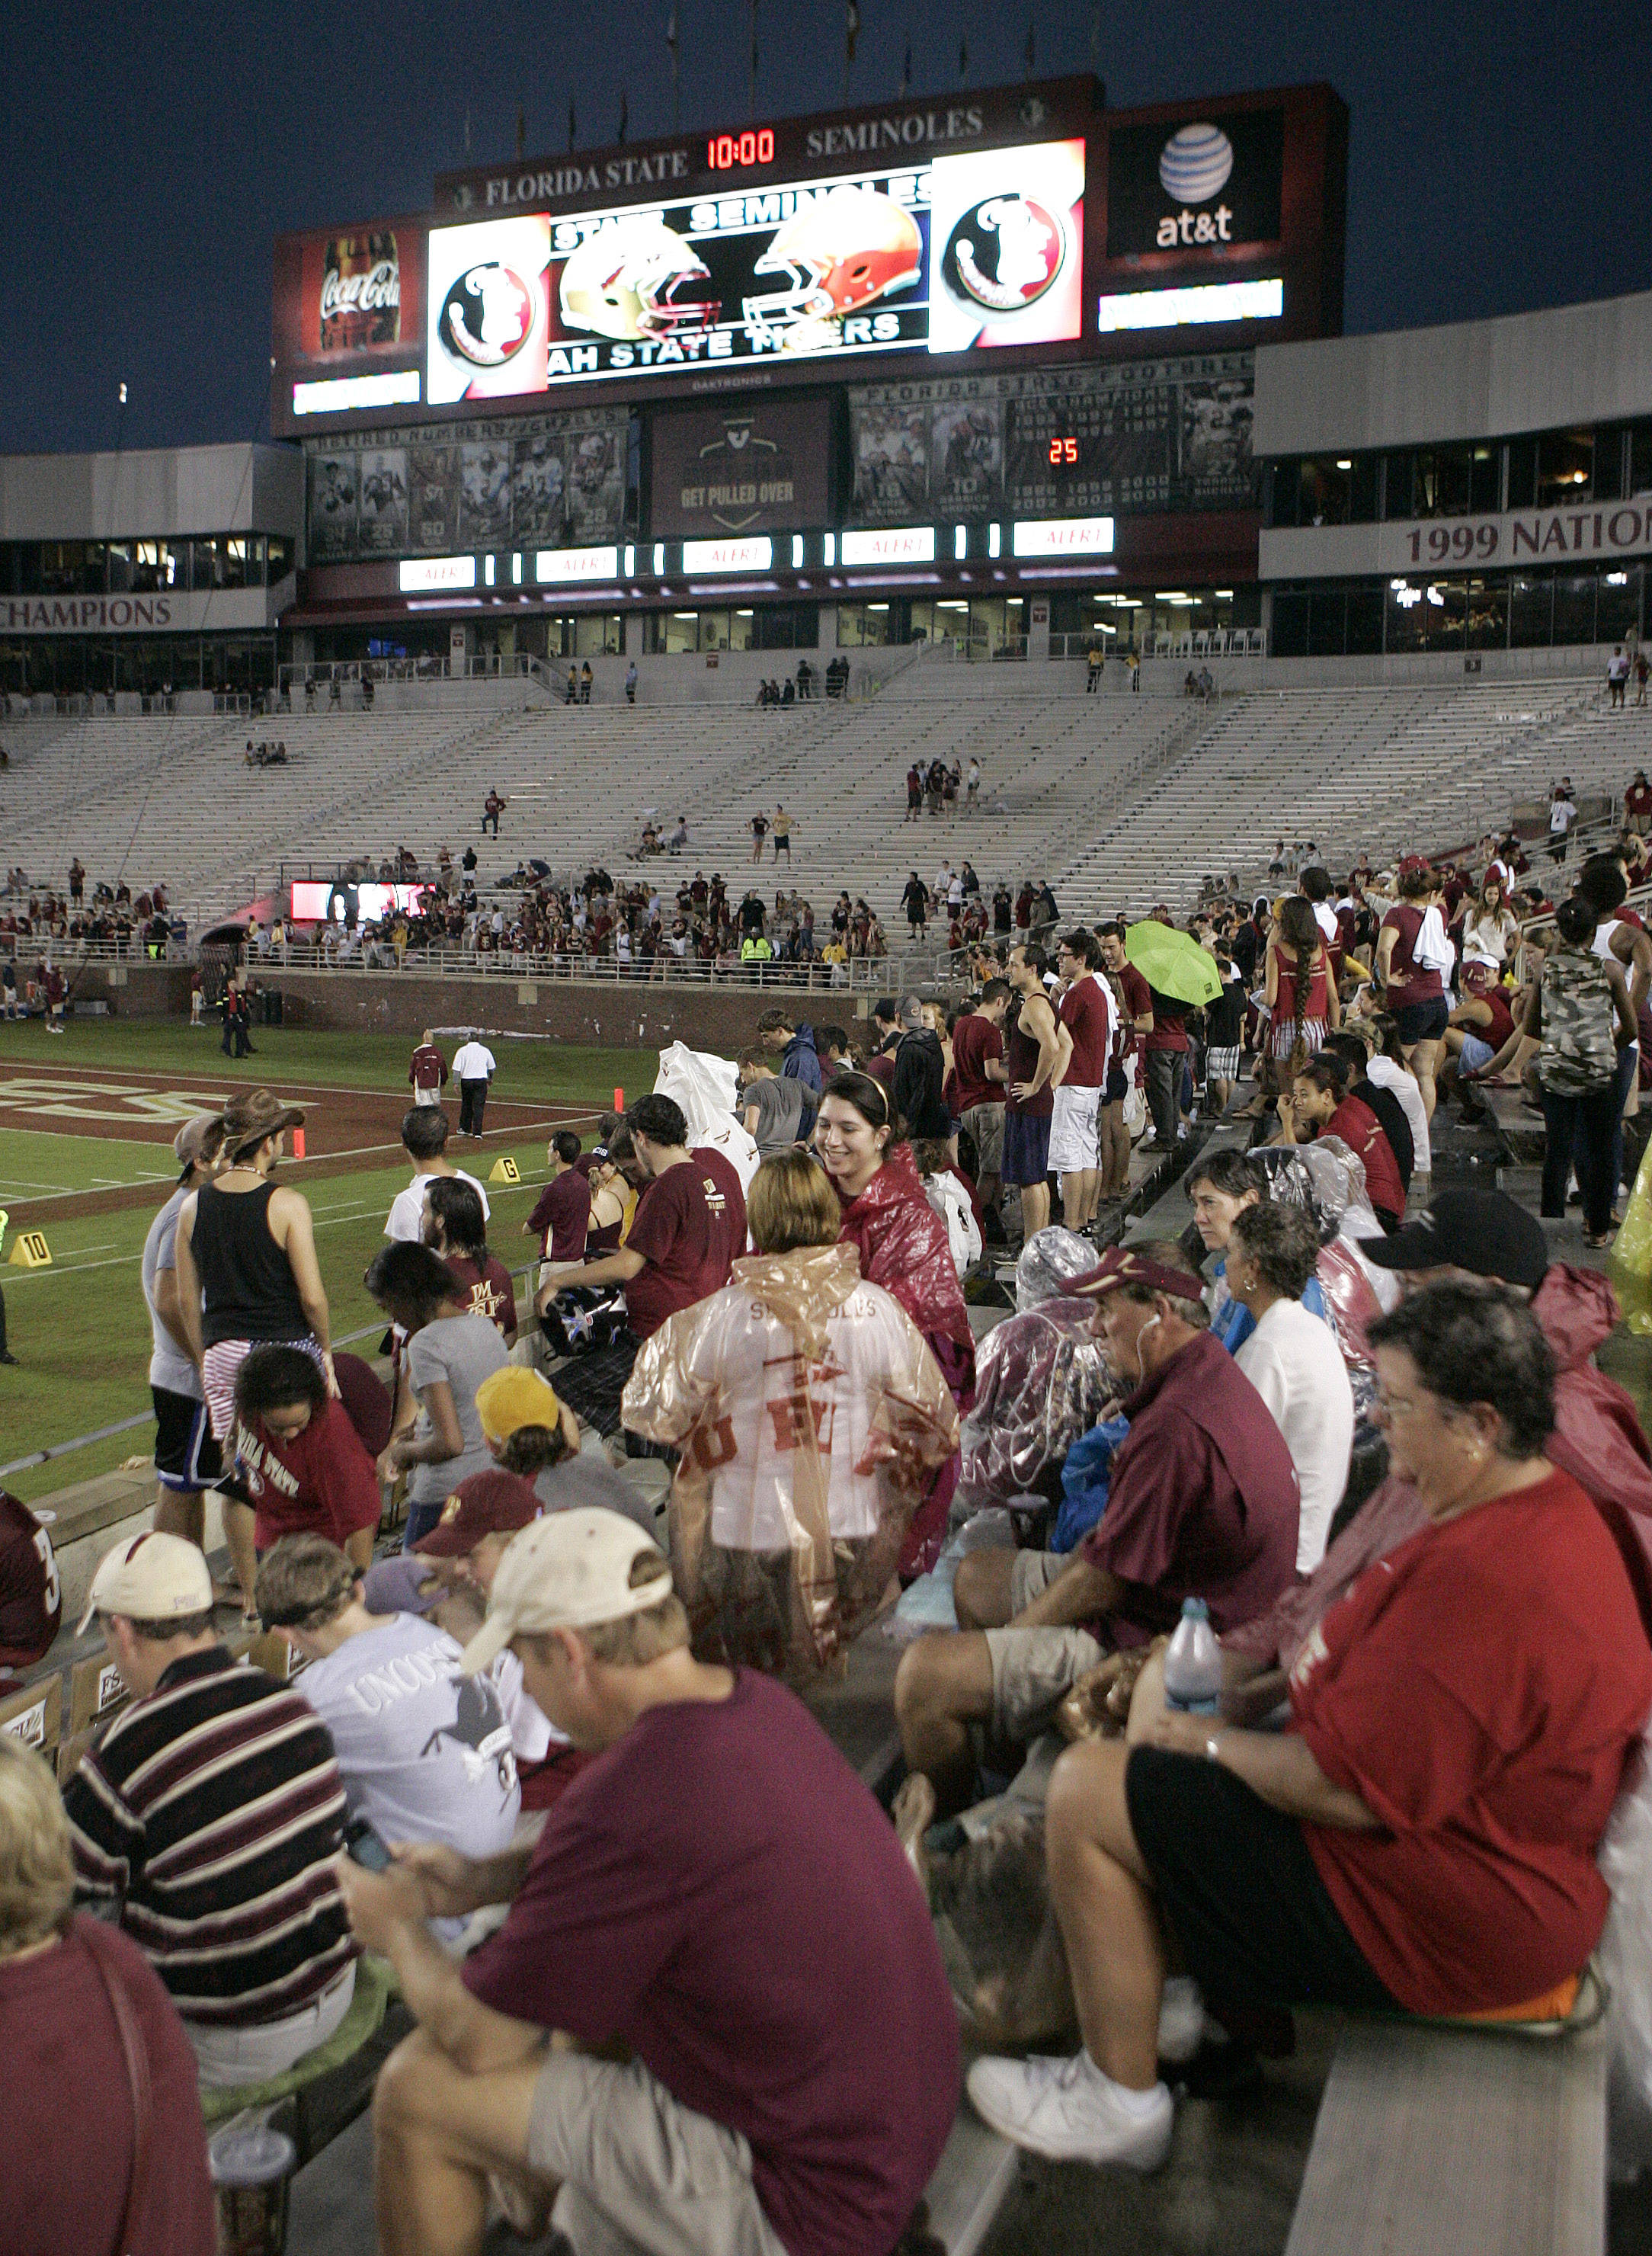 Fans wait in the stands for Florida State and Savannah State to resume their lightning-delayed game. (AP Photo/Steve Cannon)